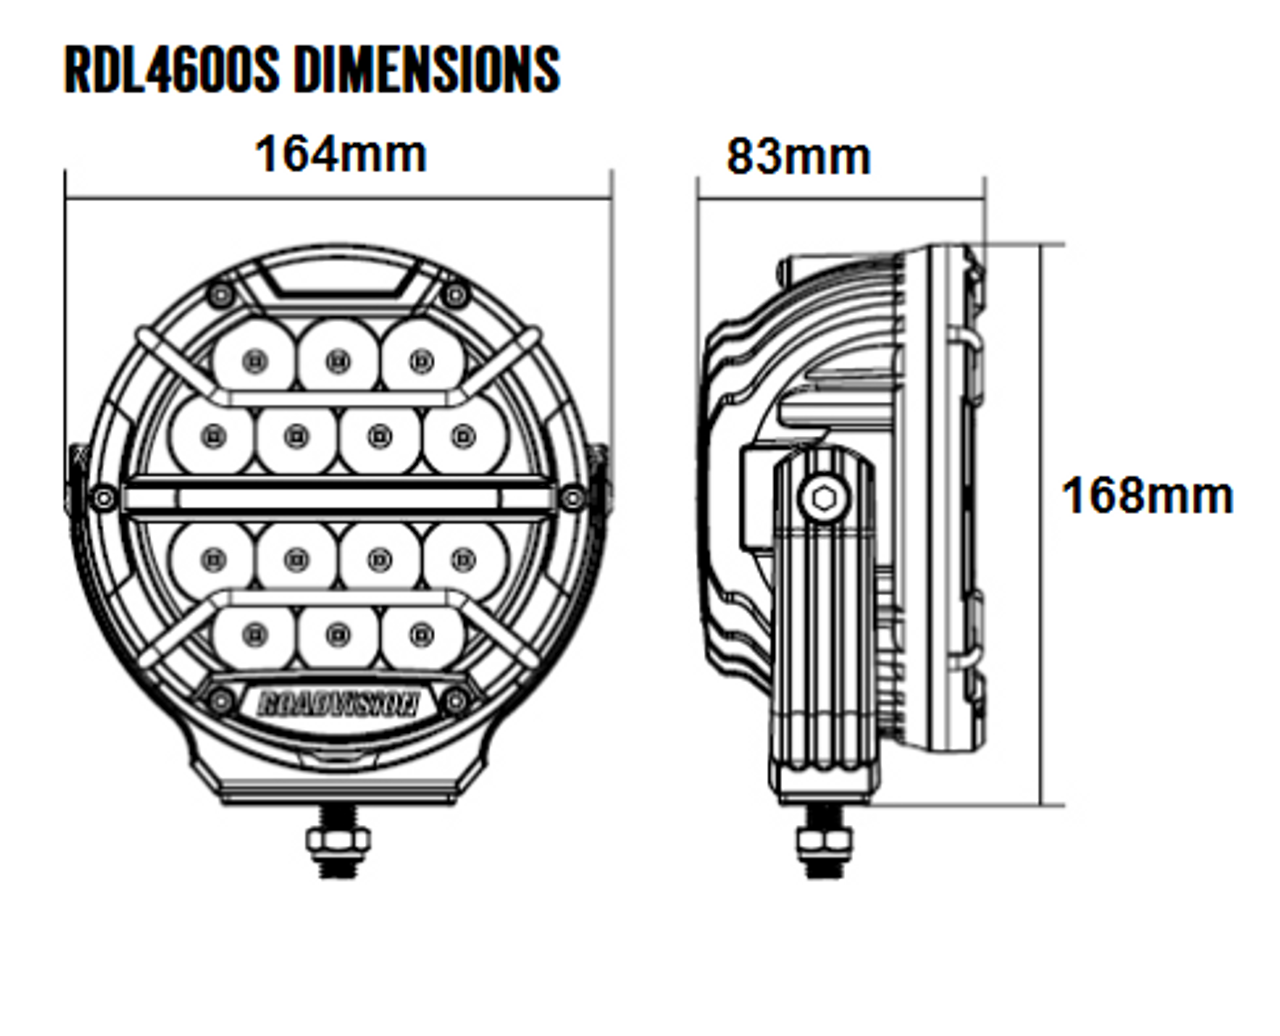 Dimensions of the 6 inch Dominator